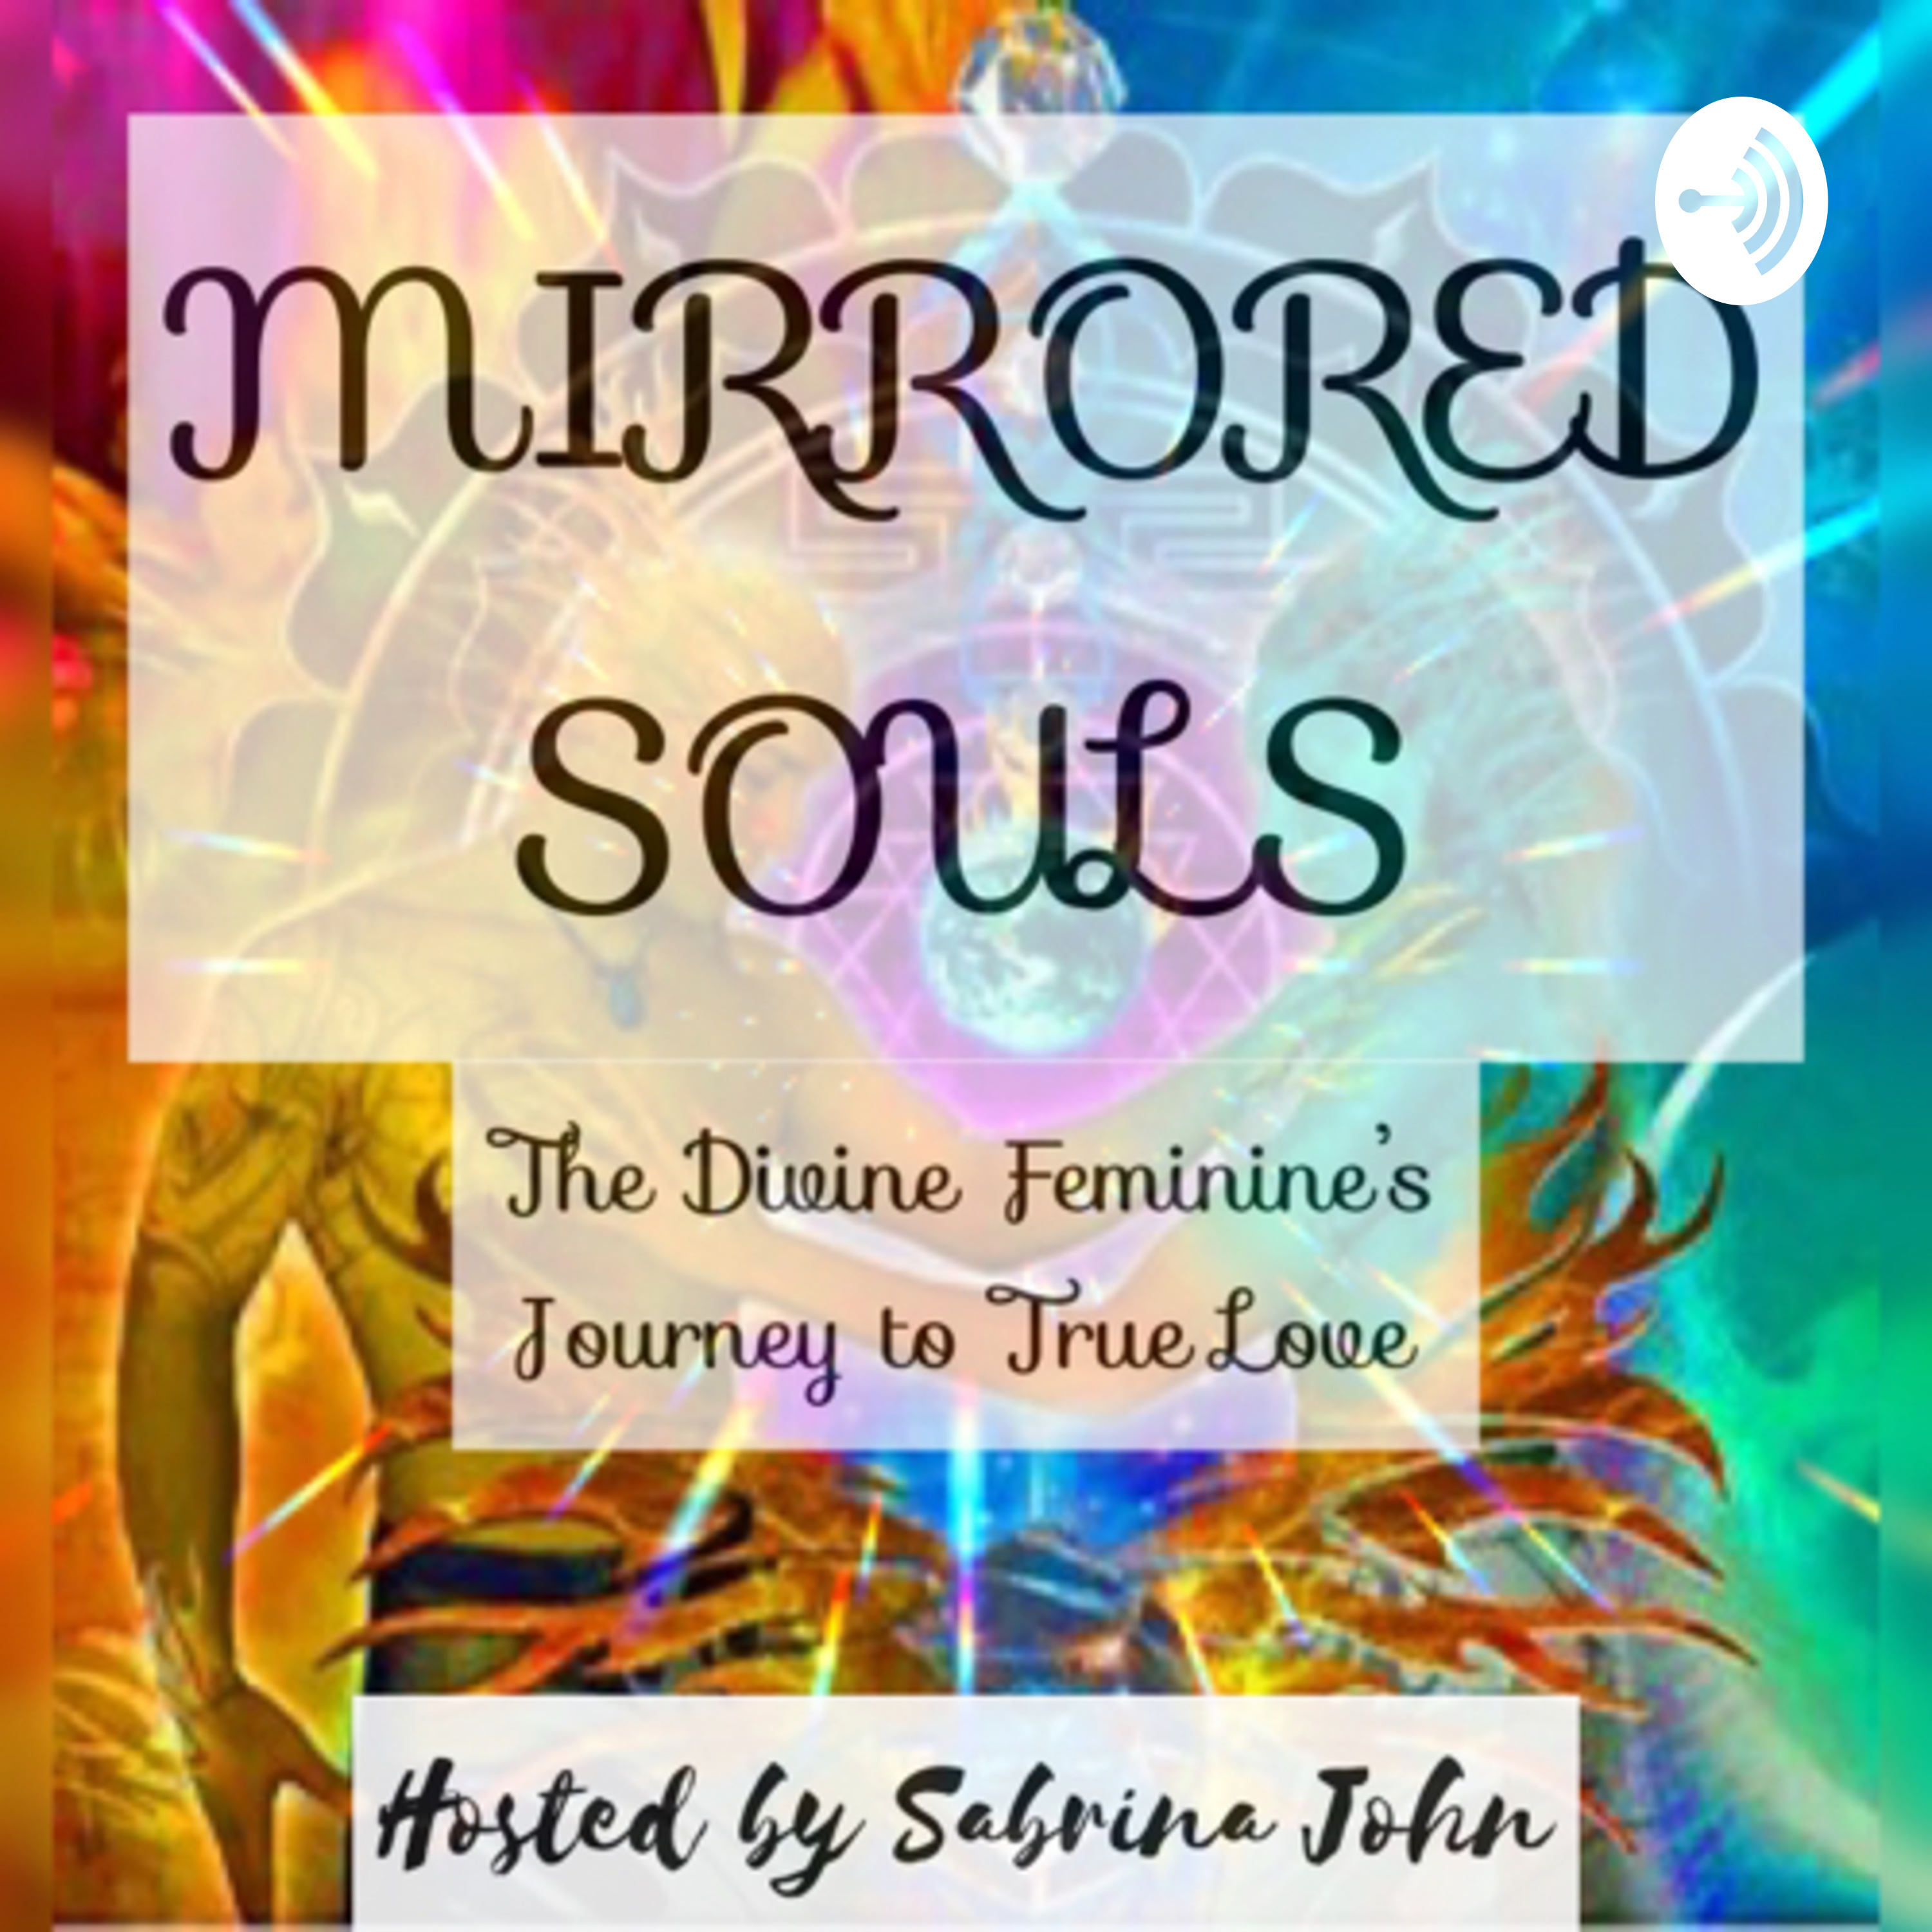 MIRRORED SOULS – The Divine Feminine's Journey To True Love – Hosted by Sabrina John